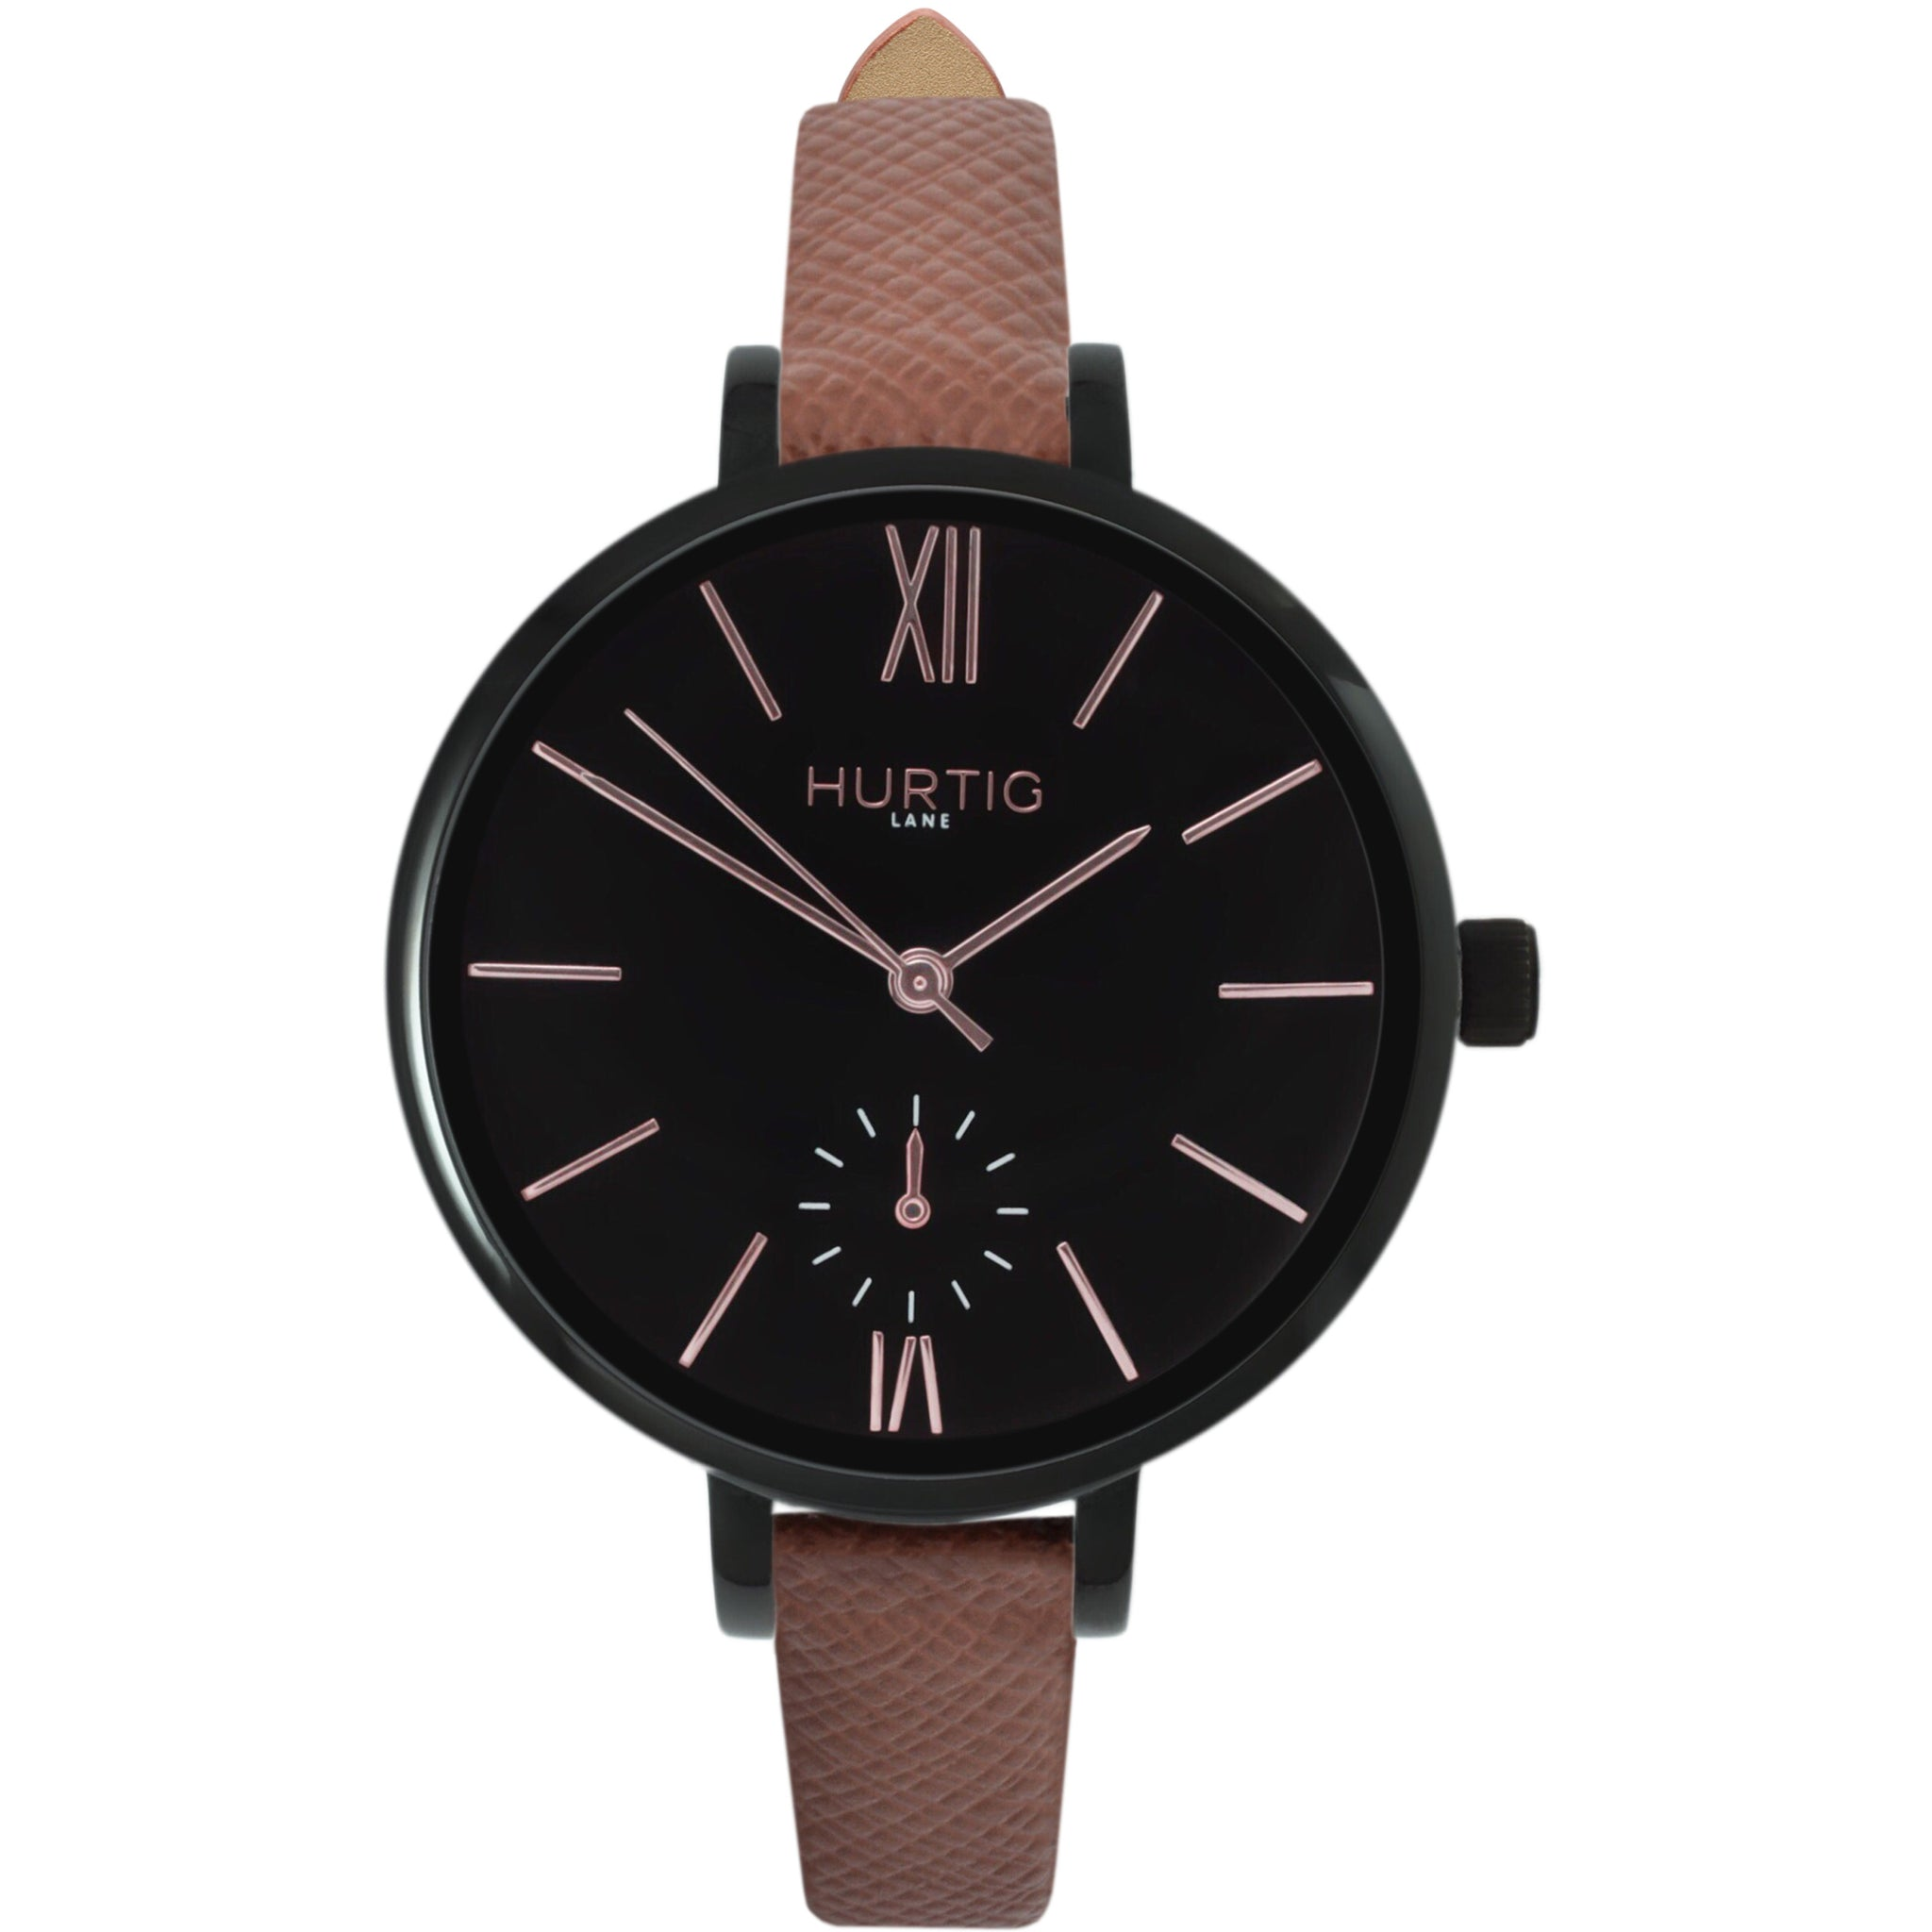 AMALFI WOMEN'S WATCH, BLACK/BLACK/TAN